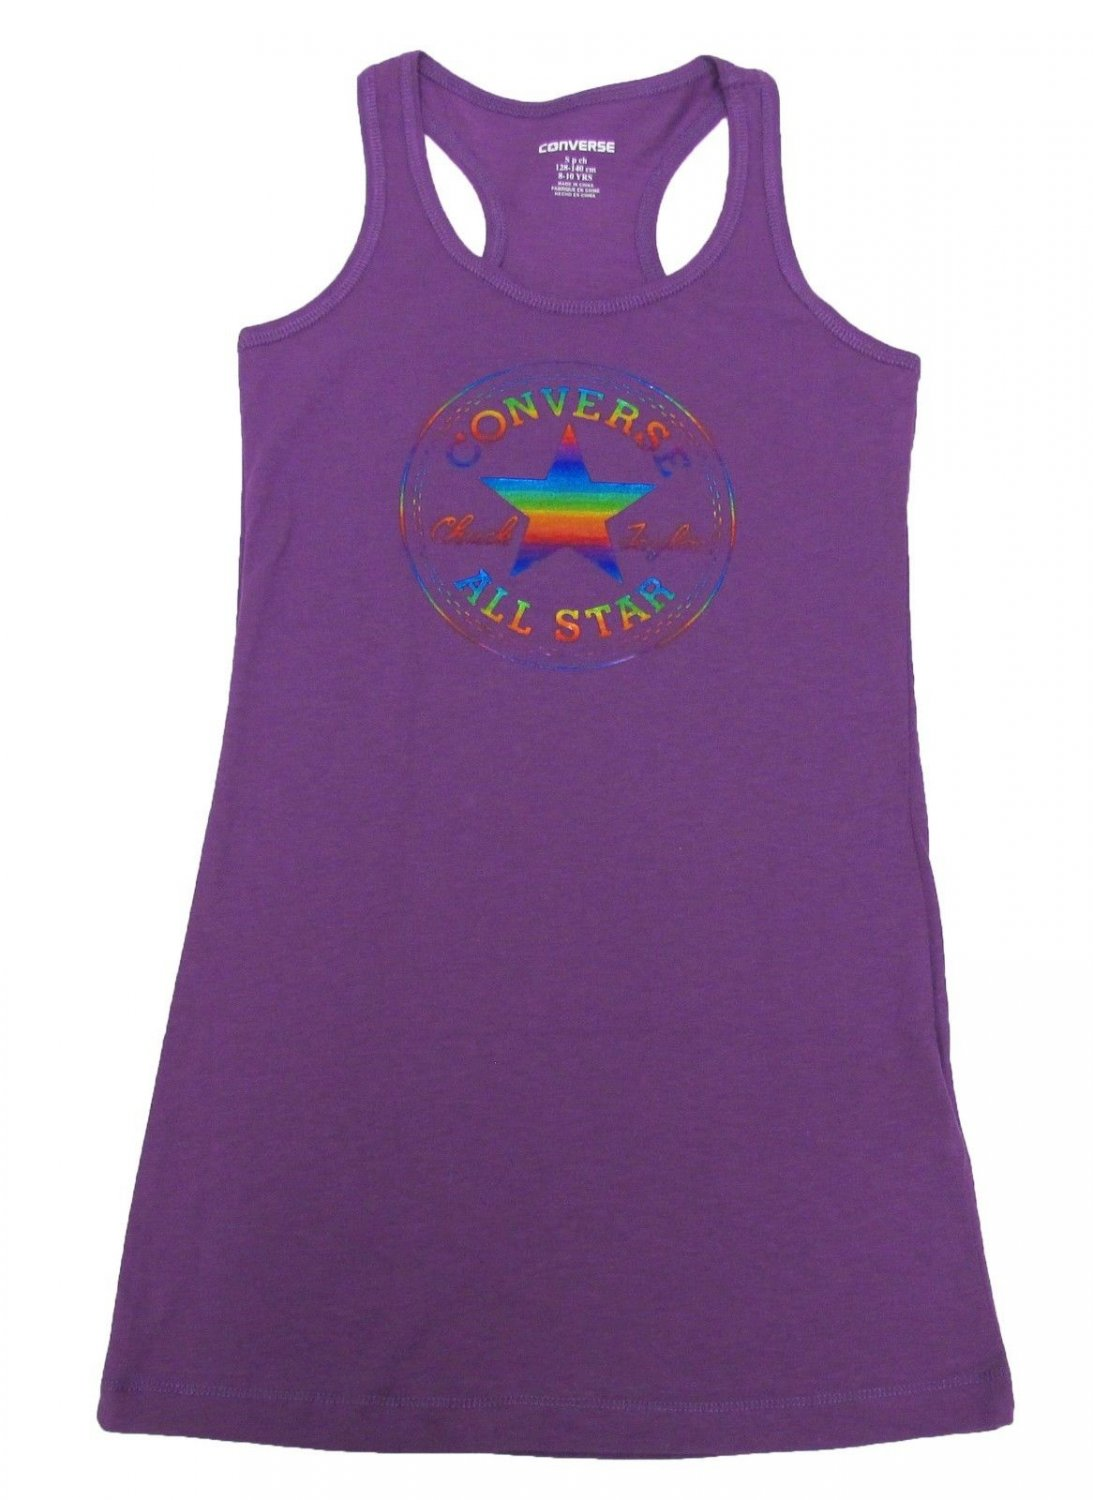 Converse Girls S Purple Dress Racerback Tank Top Sleeveless Style Youth